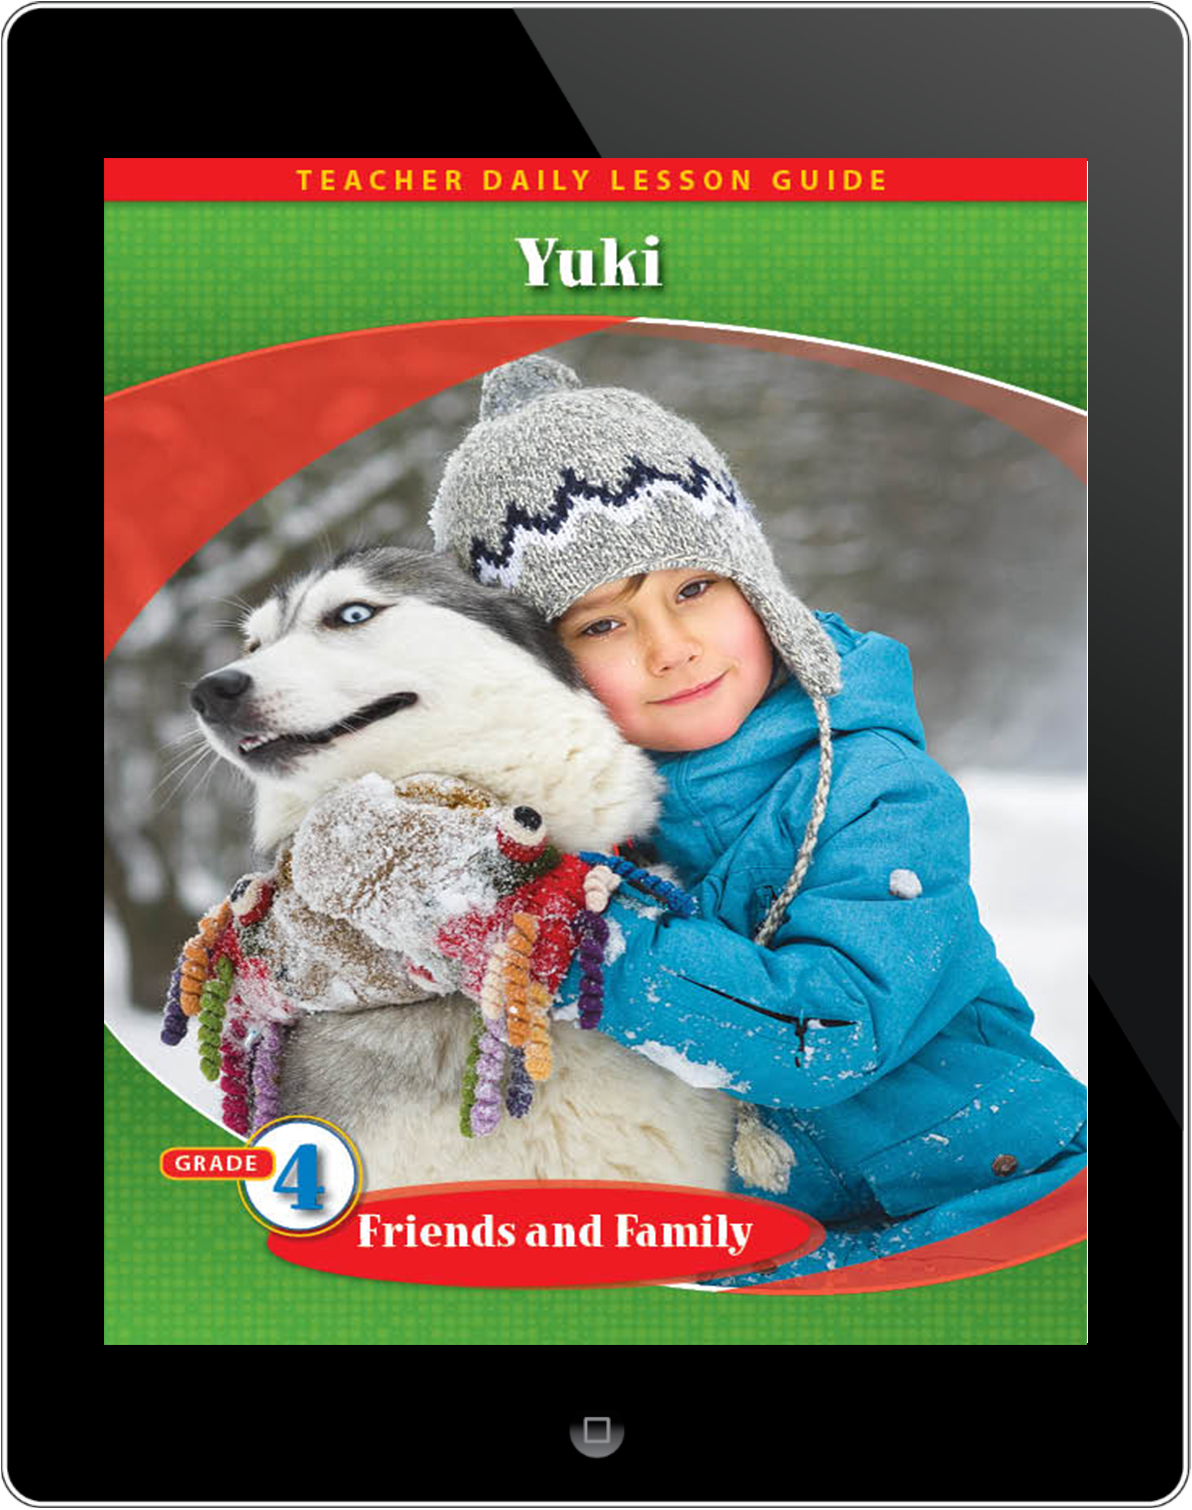 Pathways2.0 Grade 4 Friends and Family Unit: Yuki: An Alaska Adventure Daily Lesson Guide 5 Year License